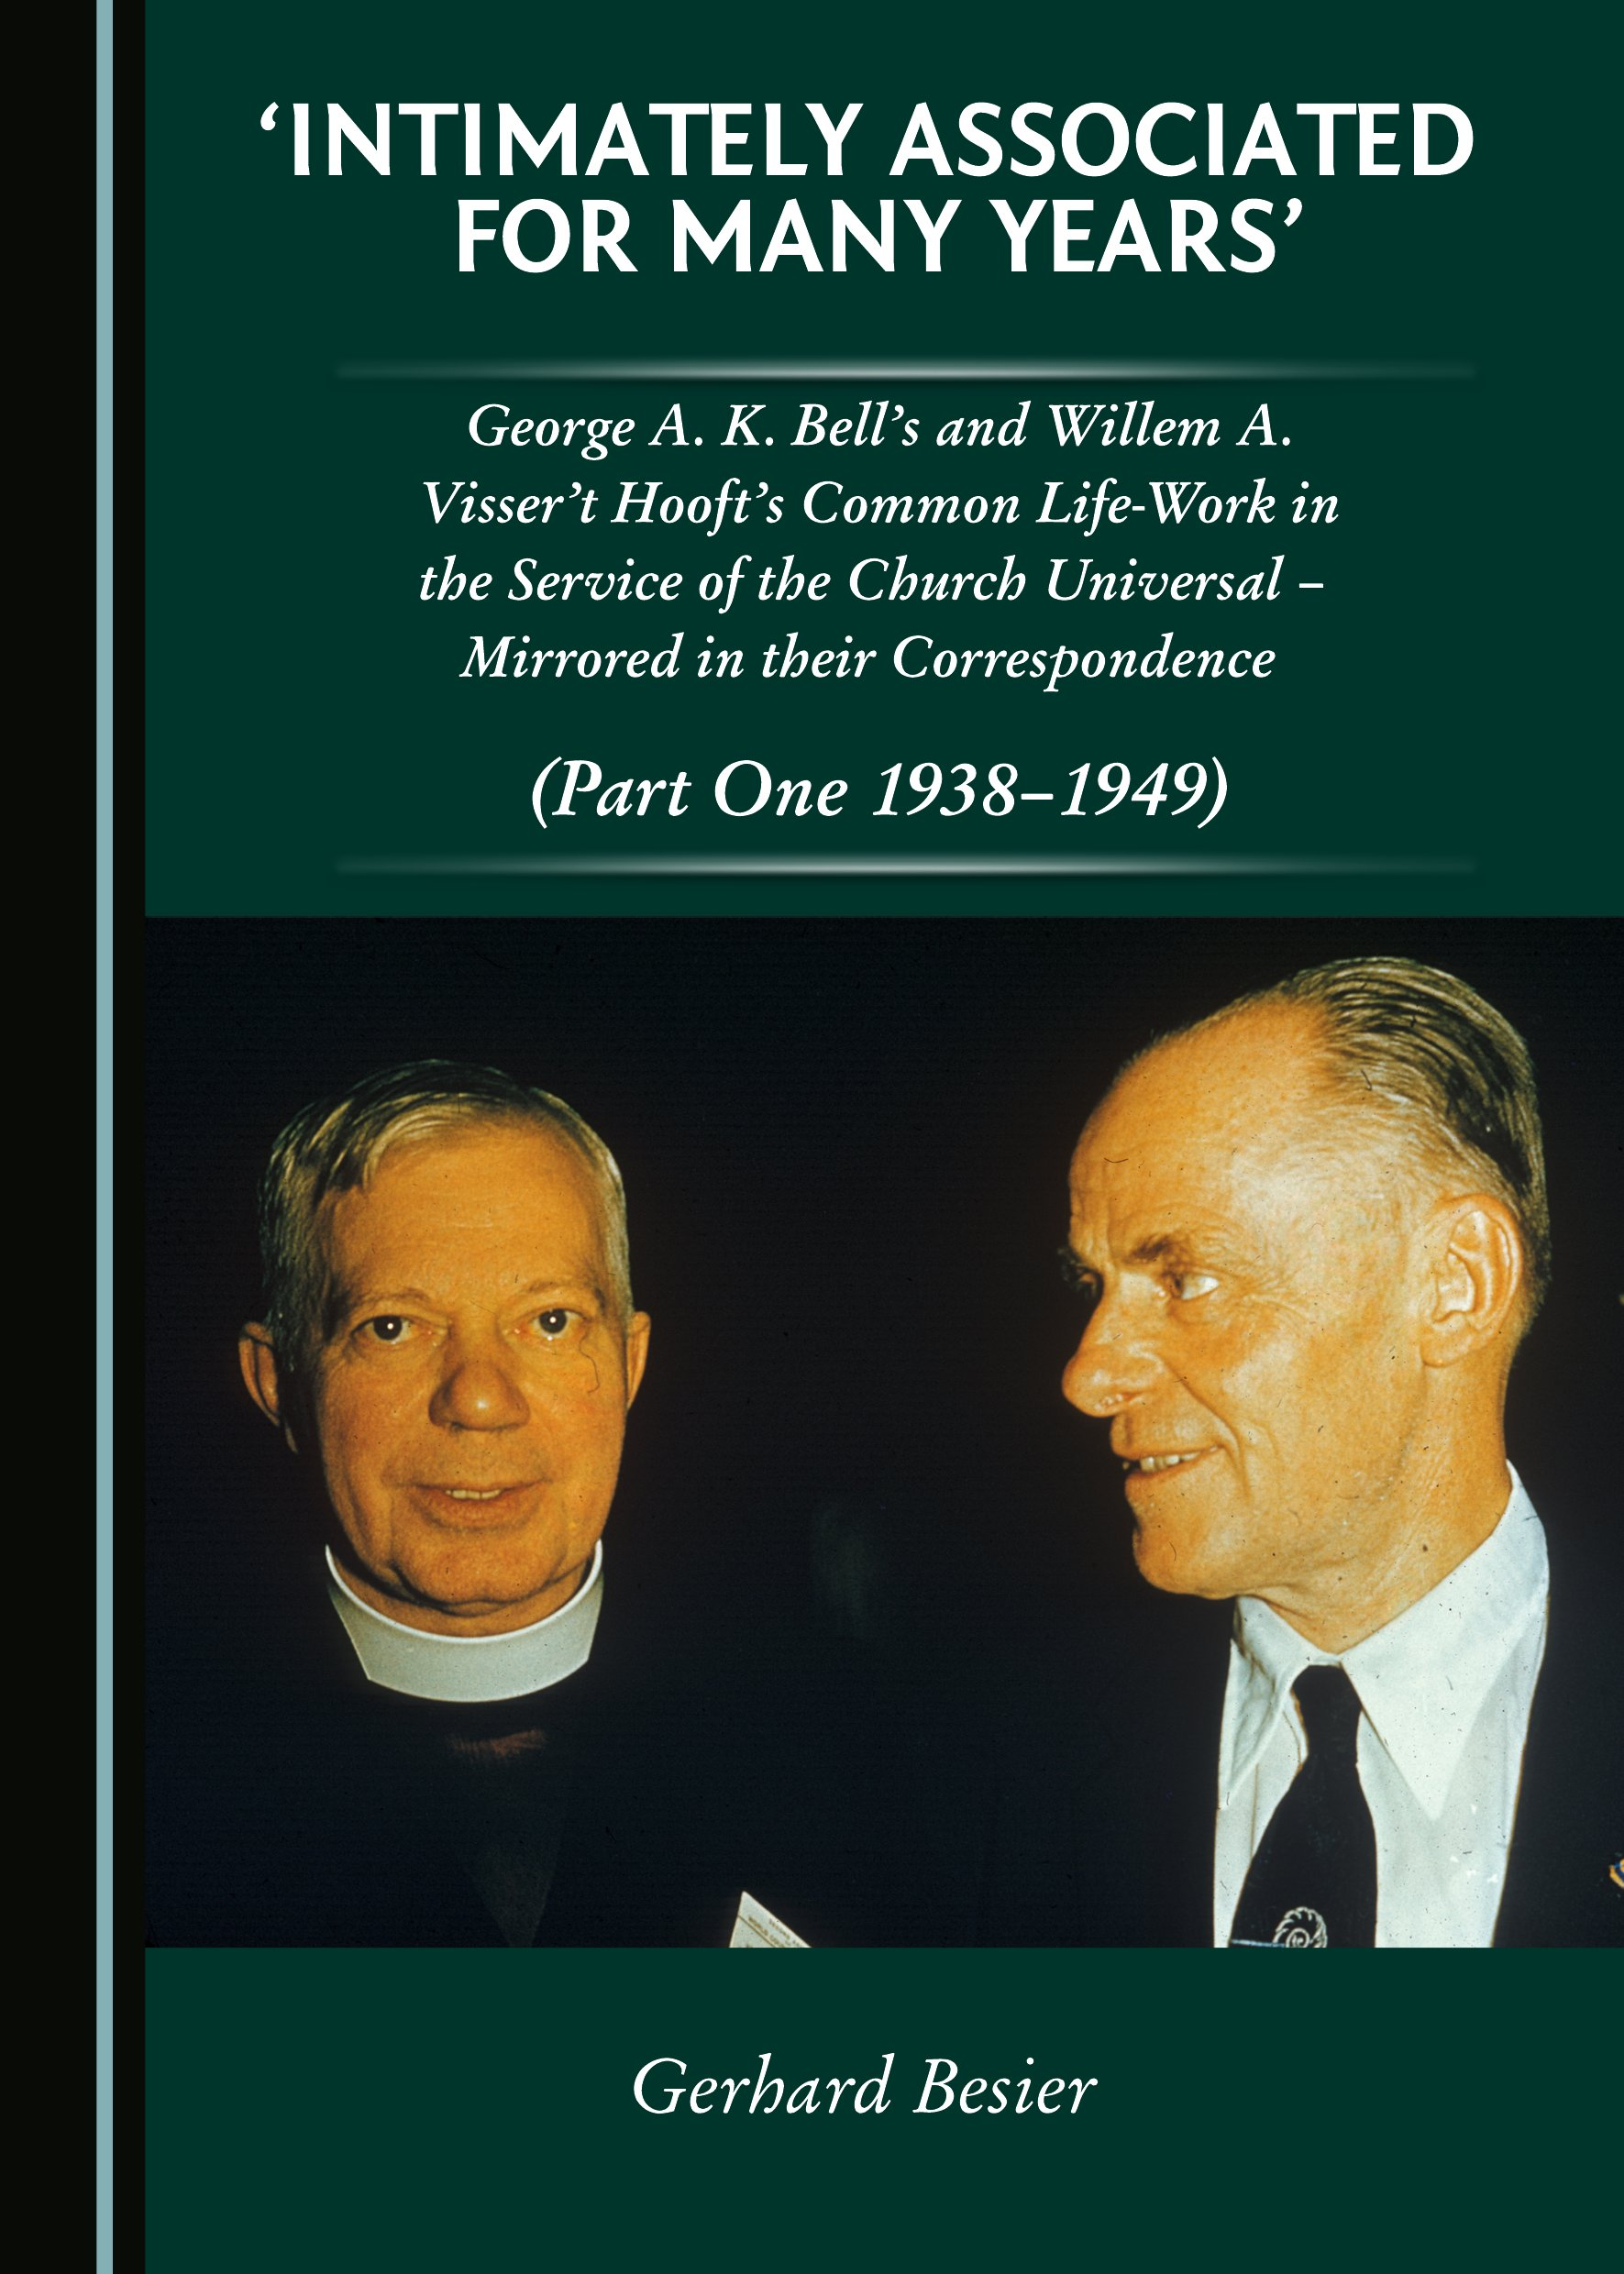 'Intimately Associated for Many Years': George K. A. Bell's and Willem A. Visser 't Hooft's Common Life-Work in the Service of the Church Universal – Mirrored in their Correspondence (Part One 1938-1949)